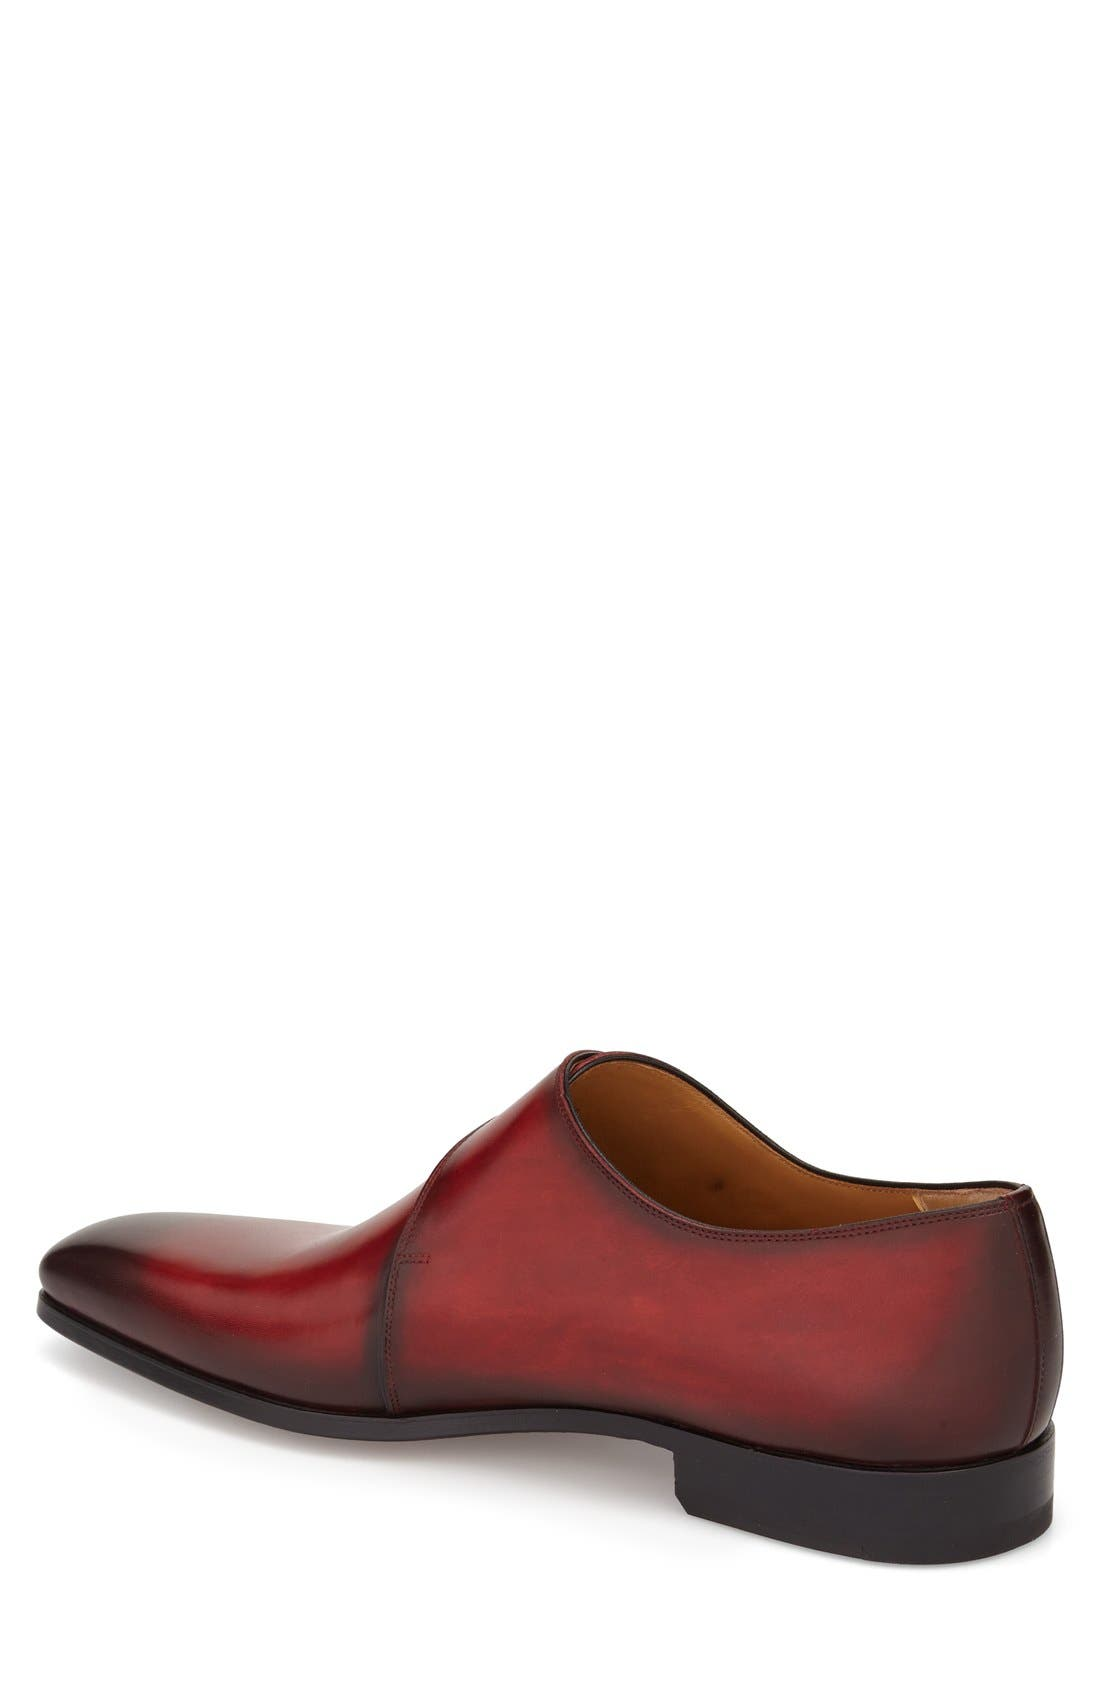 Efren Monk Strap Shoe,                             Alternate thumbnail 4, color,                             600